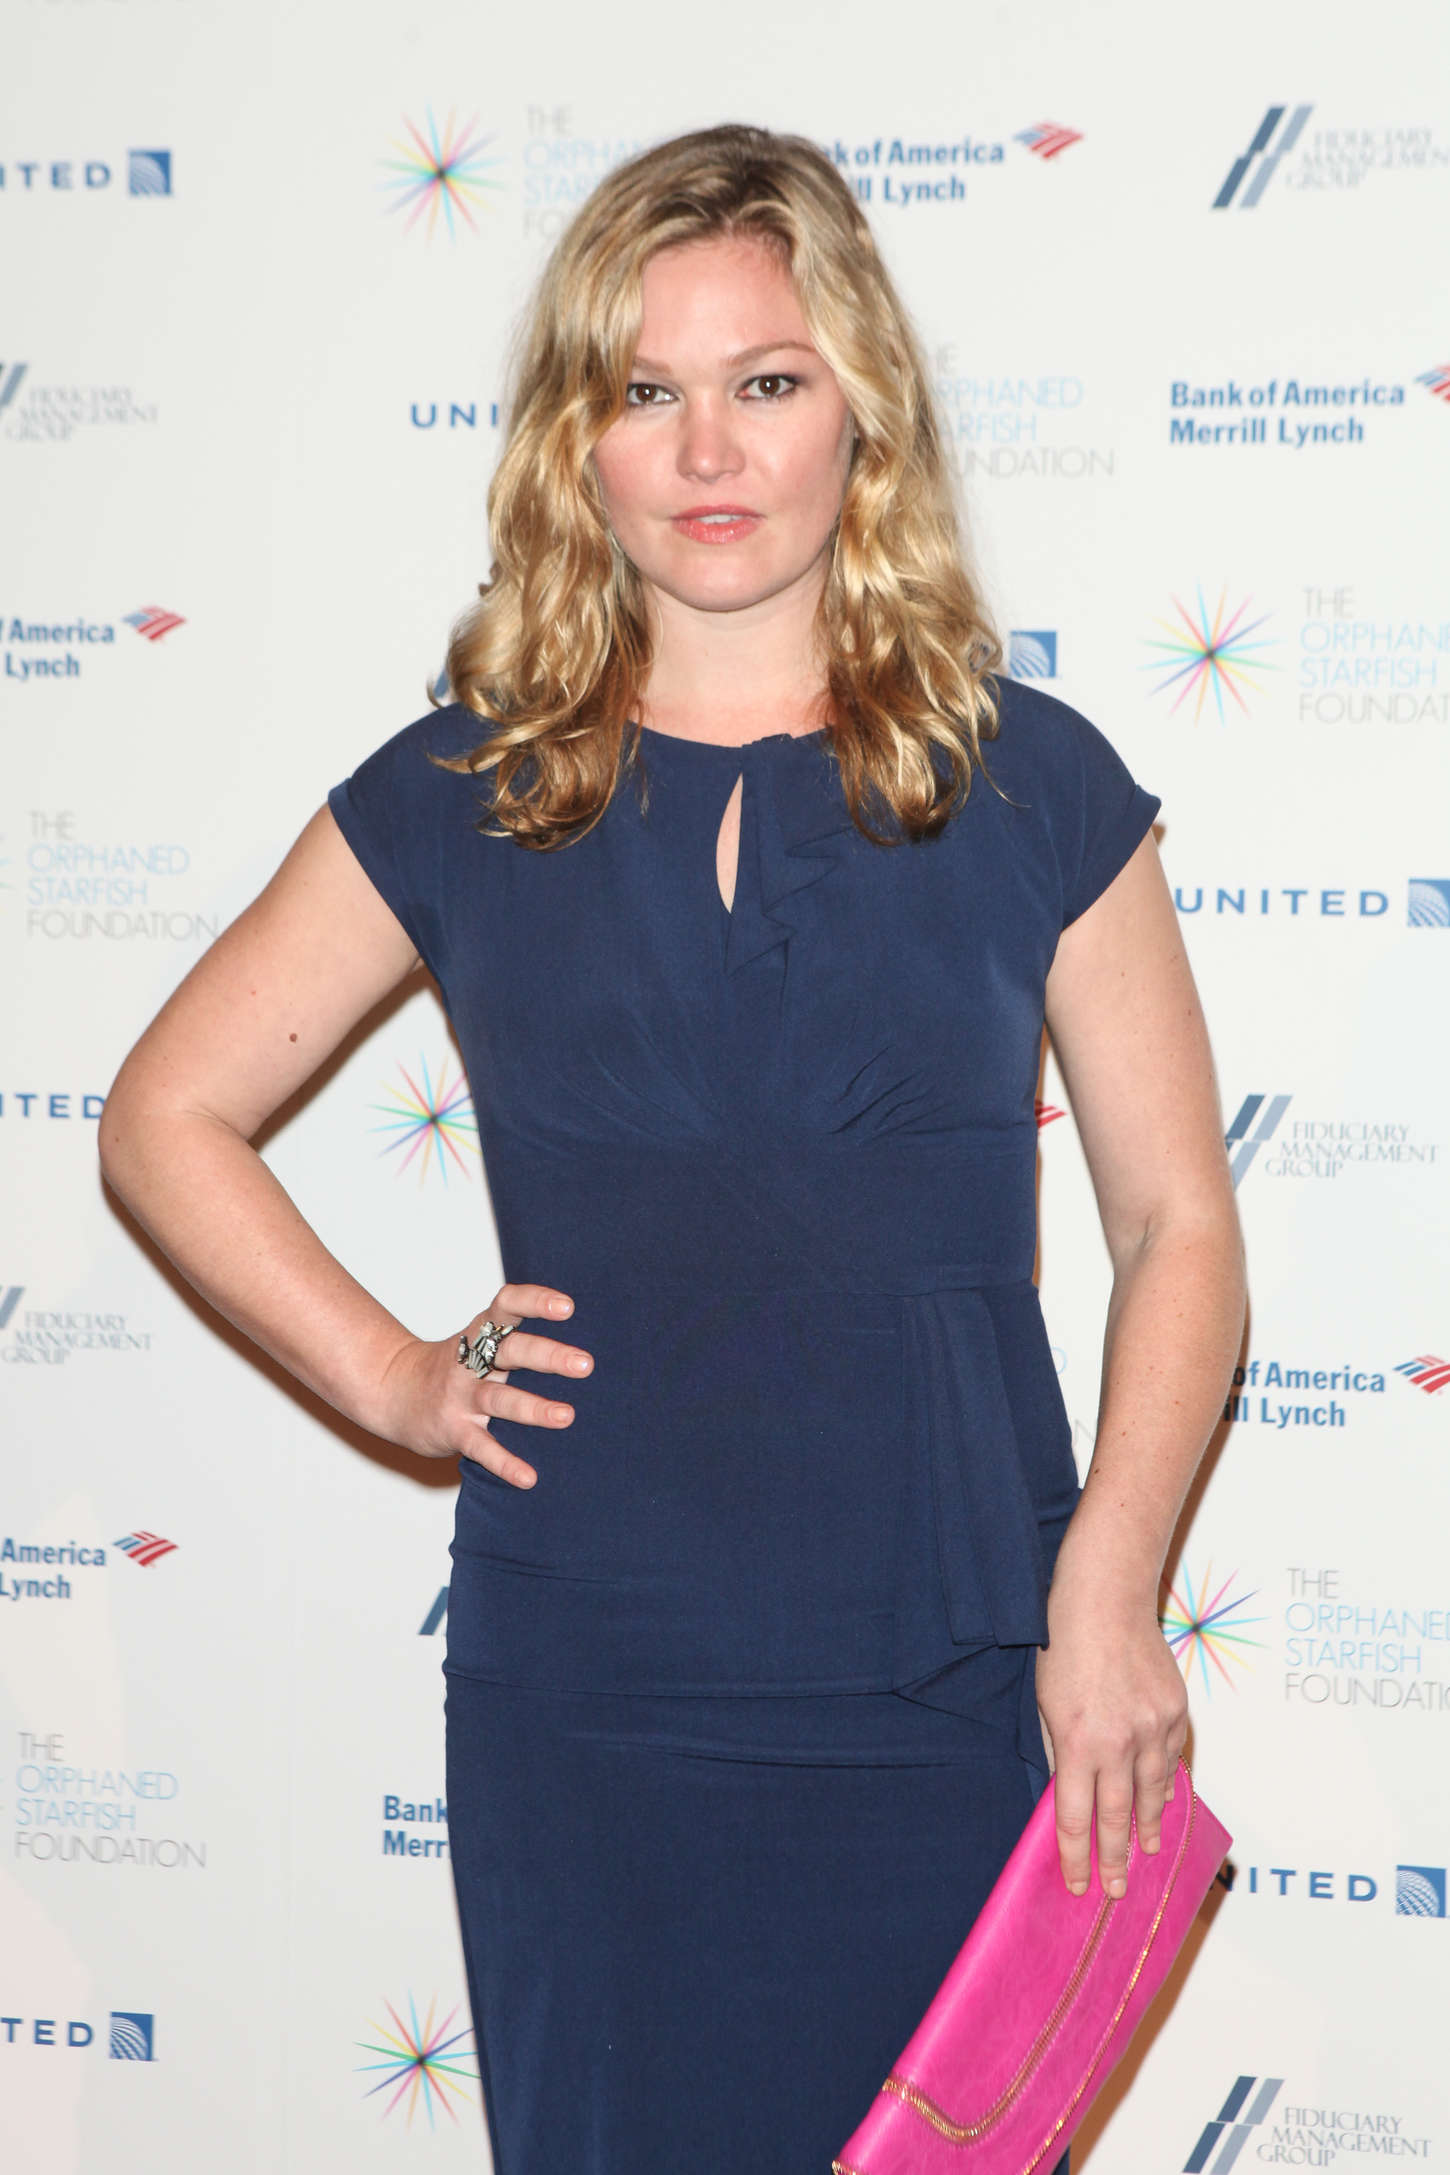 Julia Stiles - 2014 Orphaned Starfish Foundation Gala in New York City